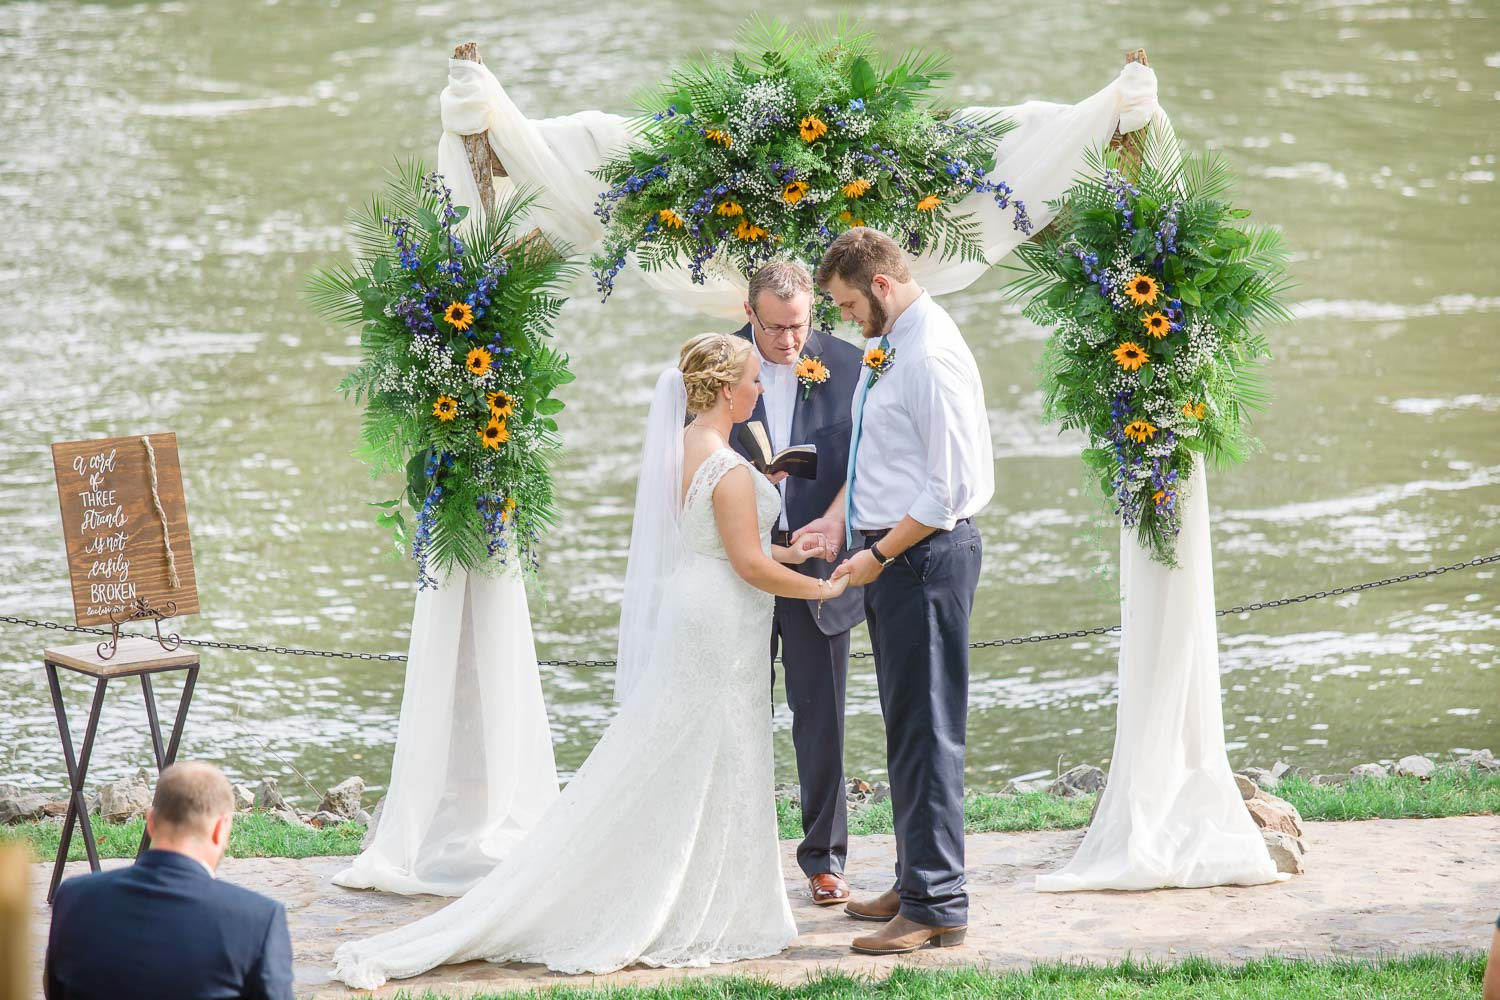 Tennessee river wedding ceremony in June